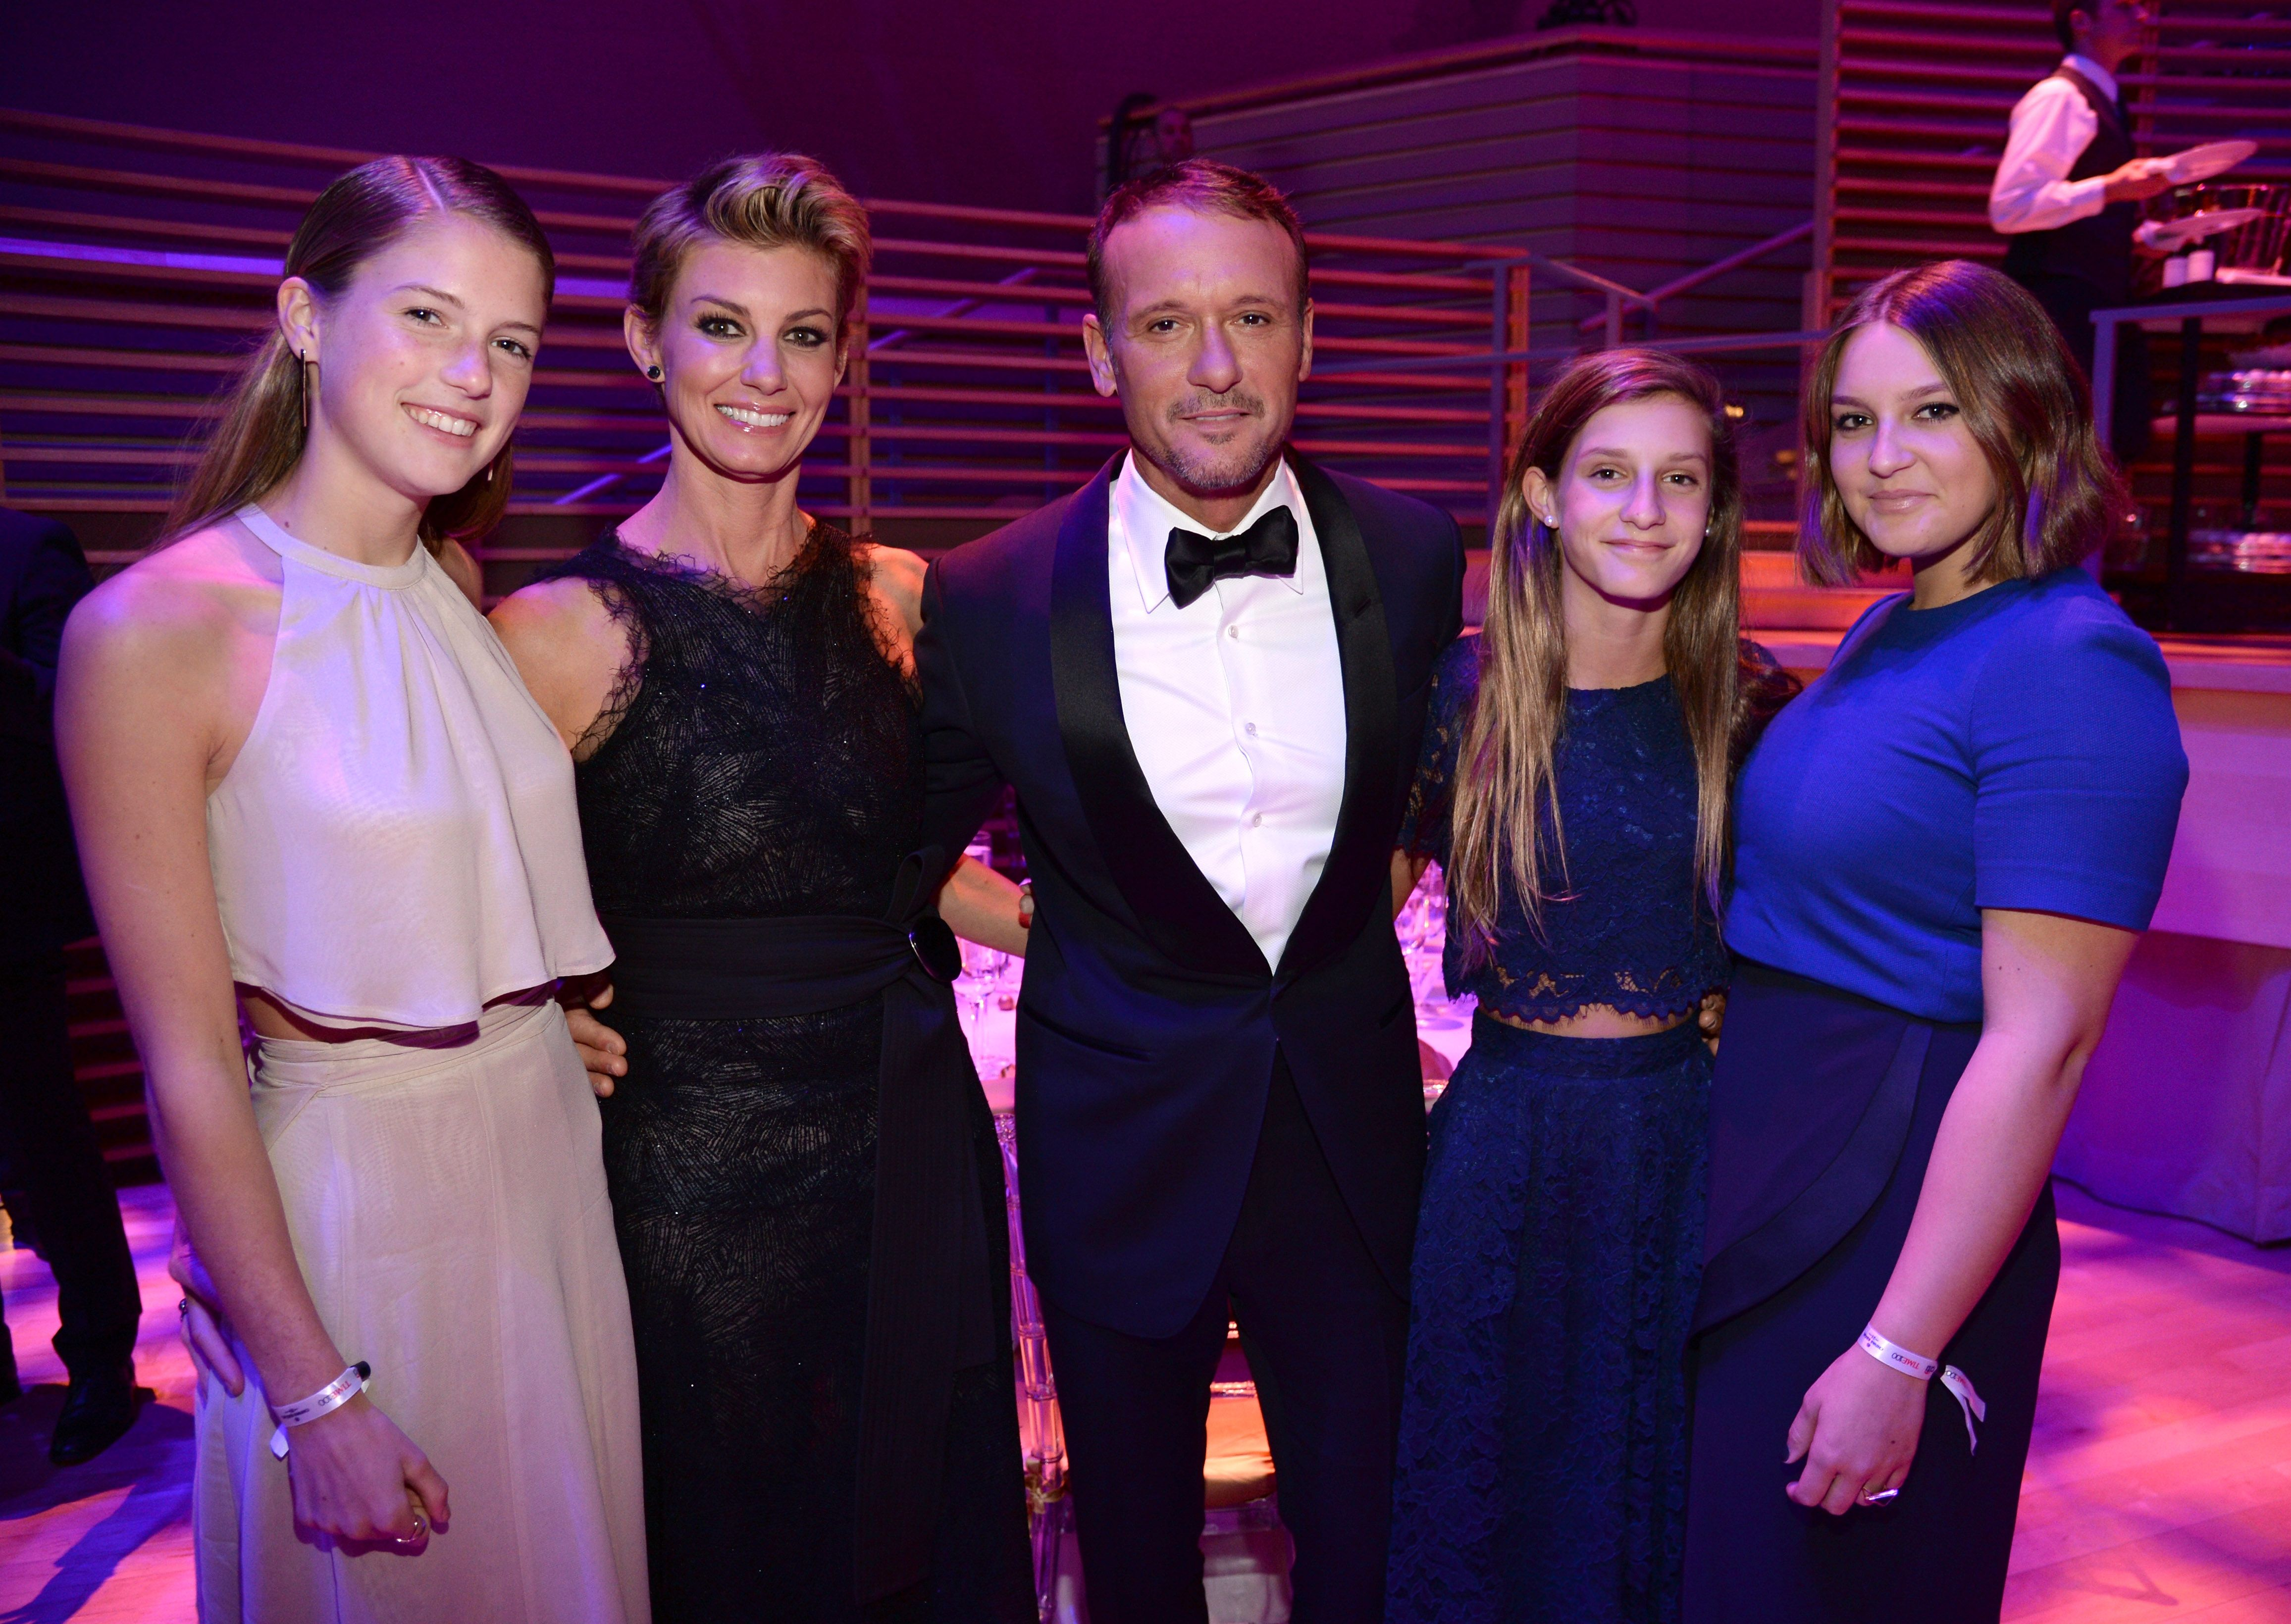 Gracie McGraw, Faith Hill, Tim McGraw, Audrey McGraw and Maggie McGraw at TIME 100 Gala, TIME's 100 Most Influential People In The World at Jazz at Lincoln Center on April 21, 2015 | Photo: Getty Images